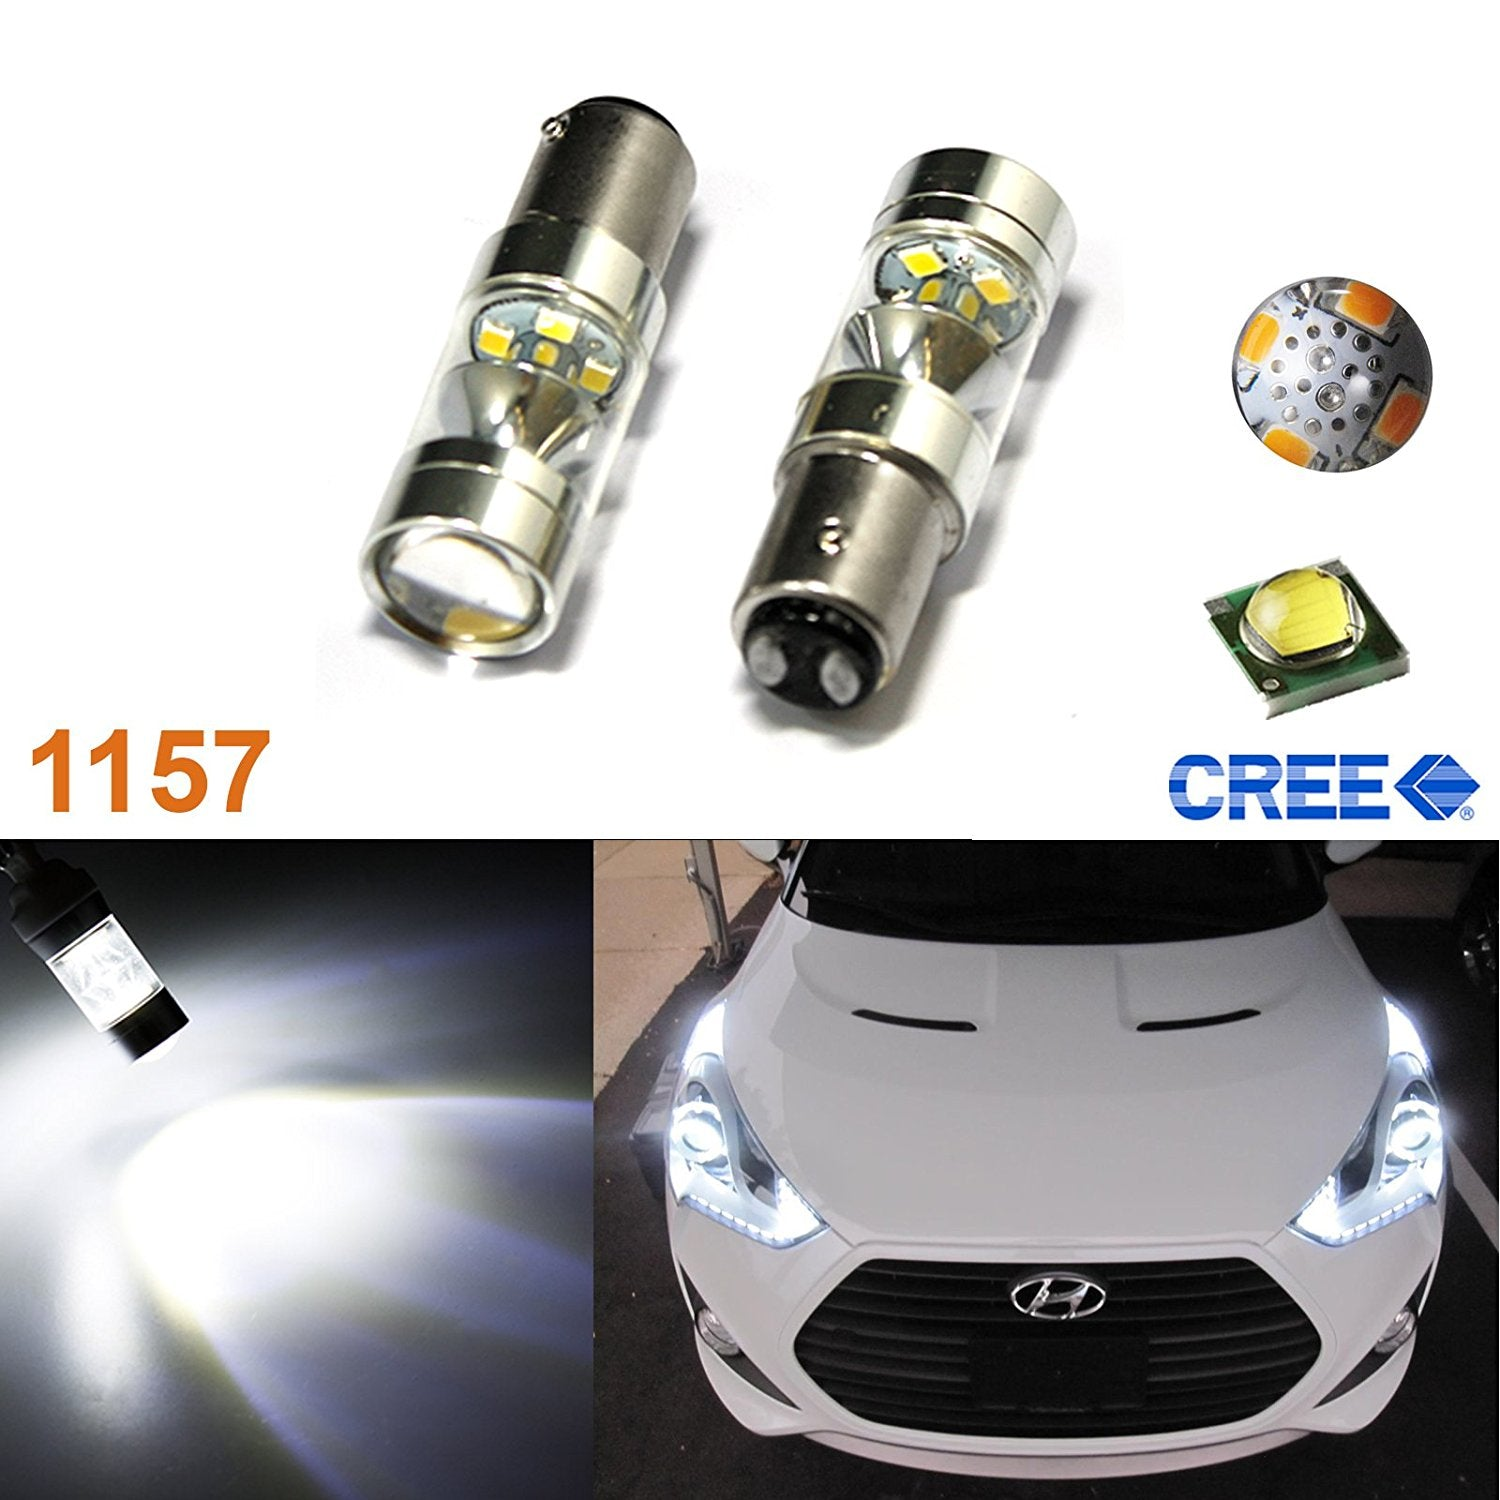 lighting for road off spot flood led spotlights light product driving vehicle lamp fog work round used lights cree